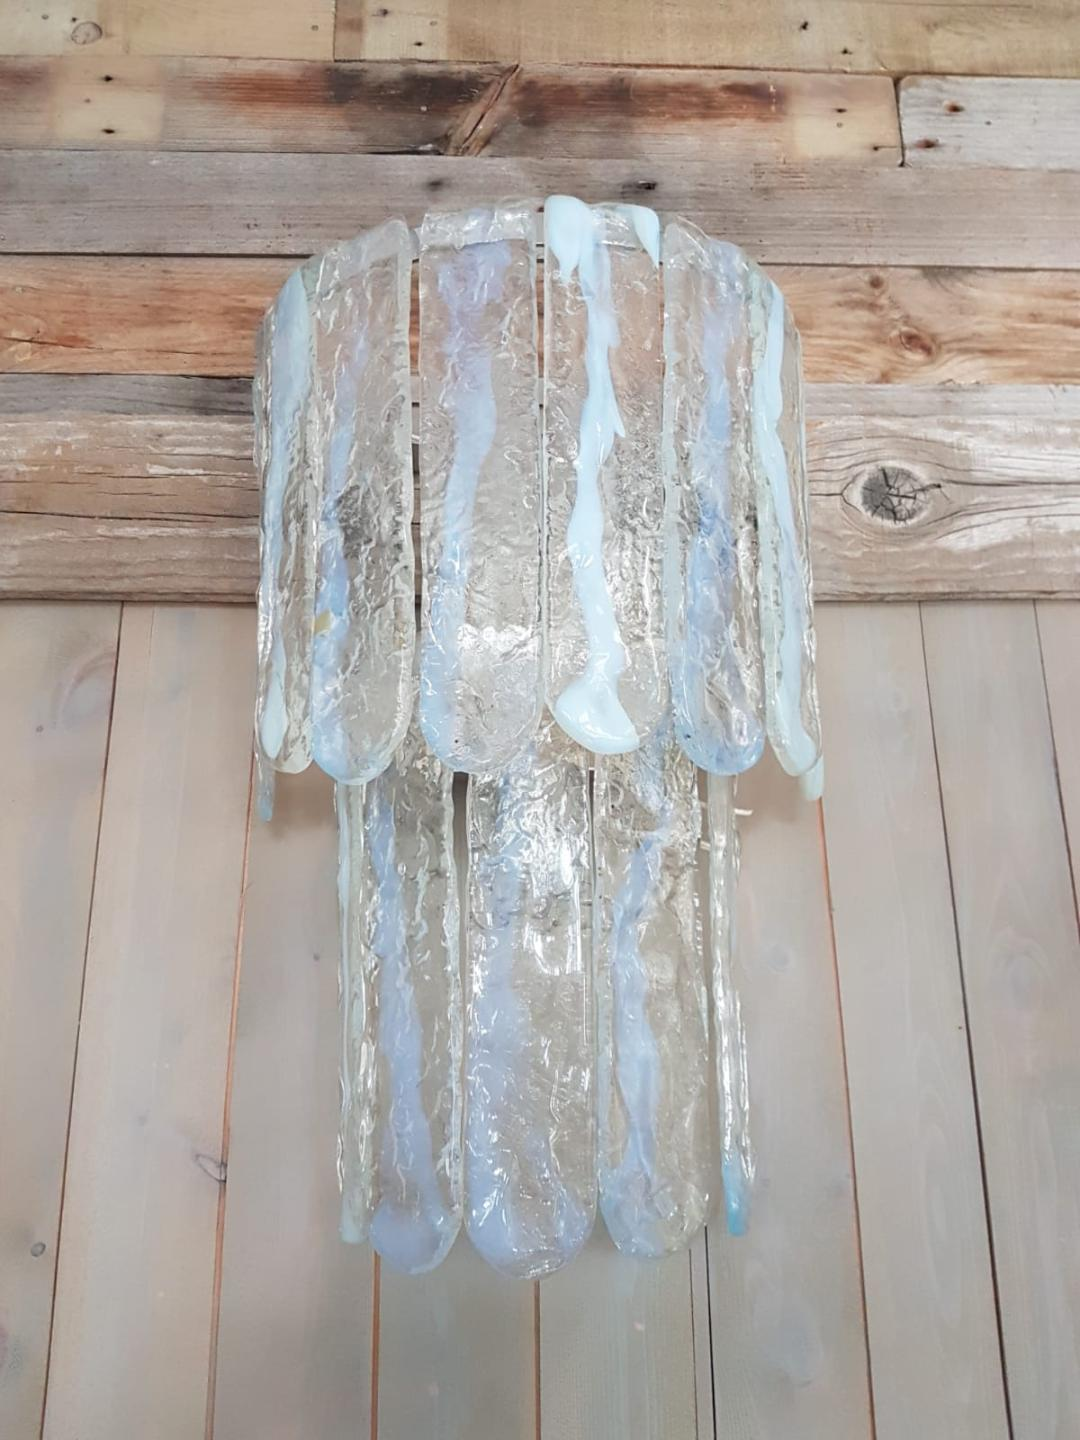 #5642-UCGG - Glass Sconce